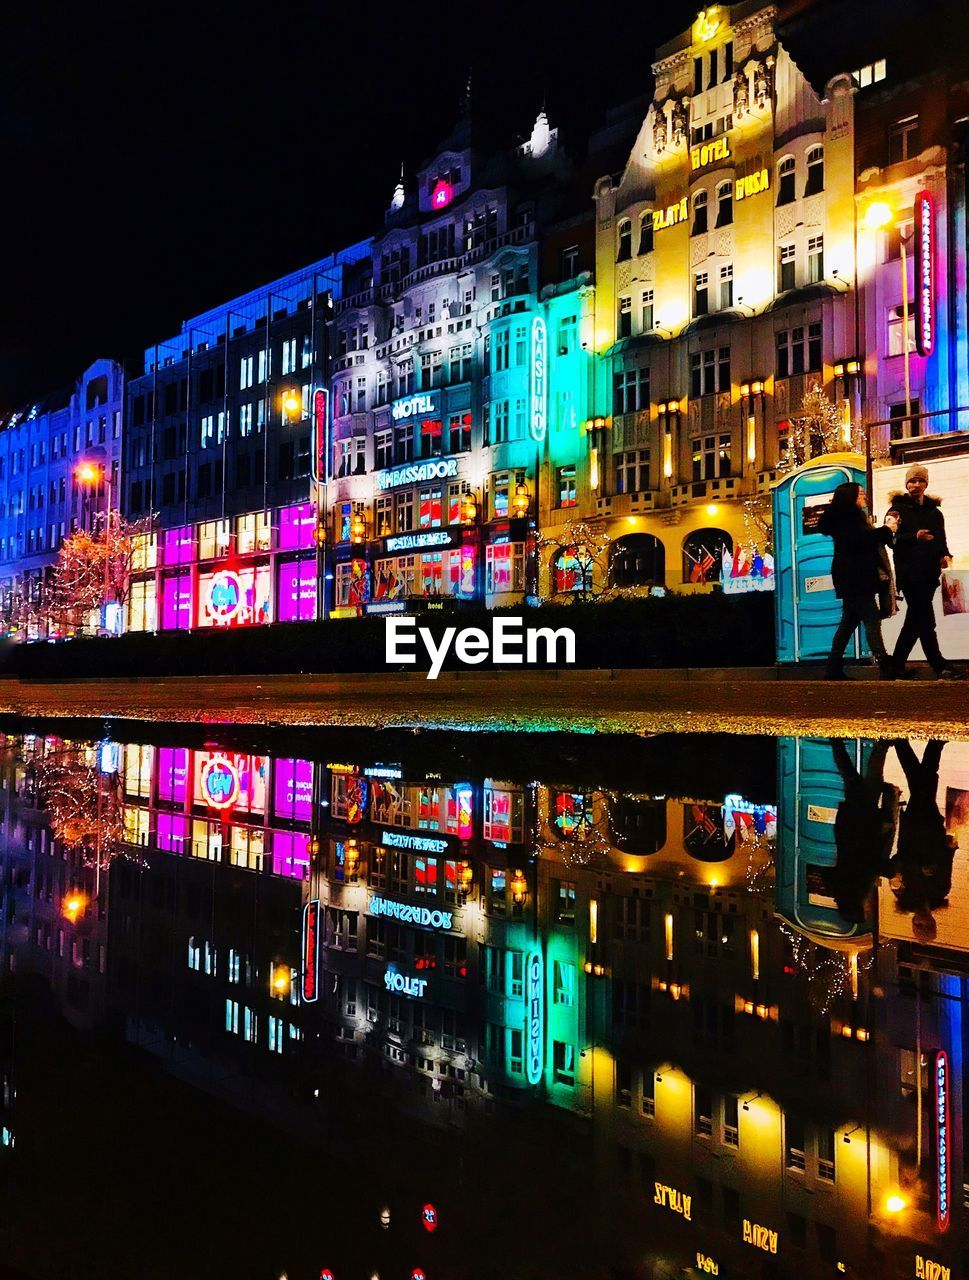 ILLUMINATED BUILDINGS BY LAKE AGAINST SKY IN CITY